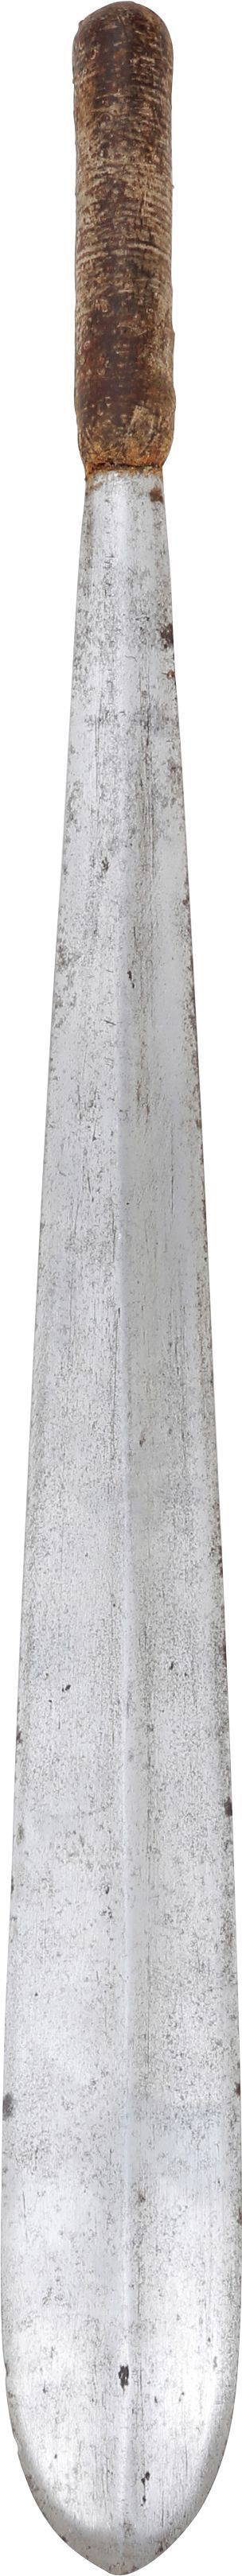 MAASAI SWORD SEME - Fagan Arms